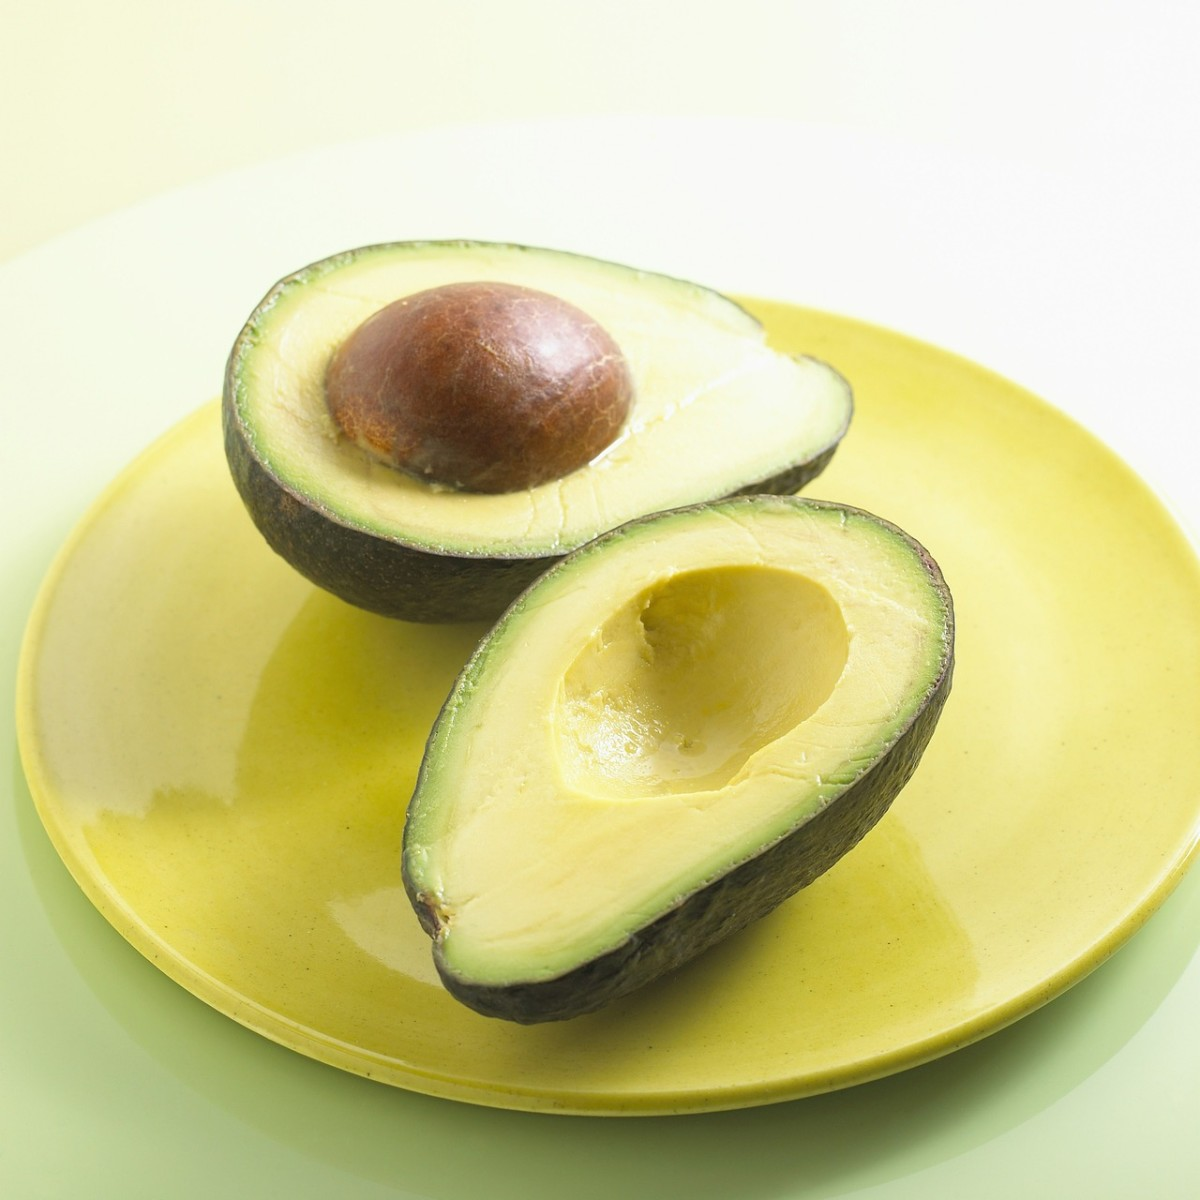 Avocado is also known as Alligator Pear.